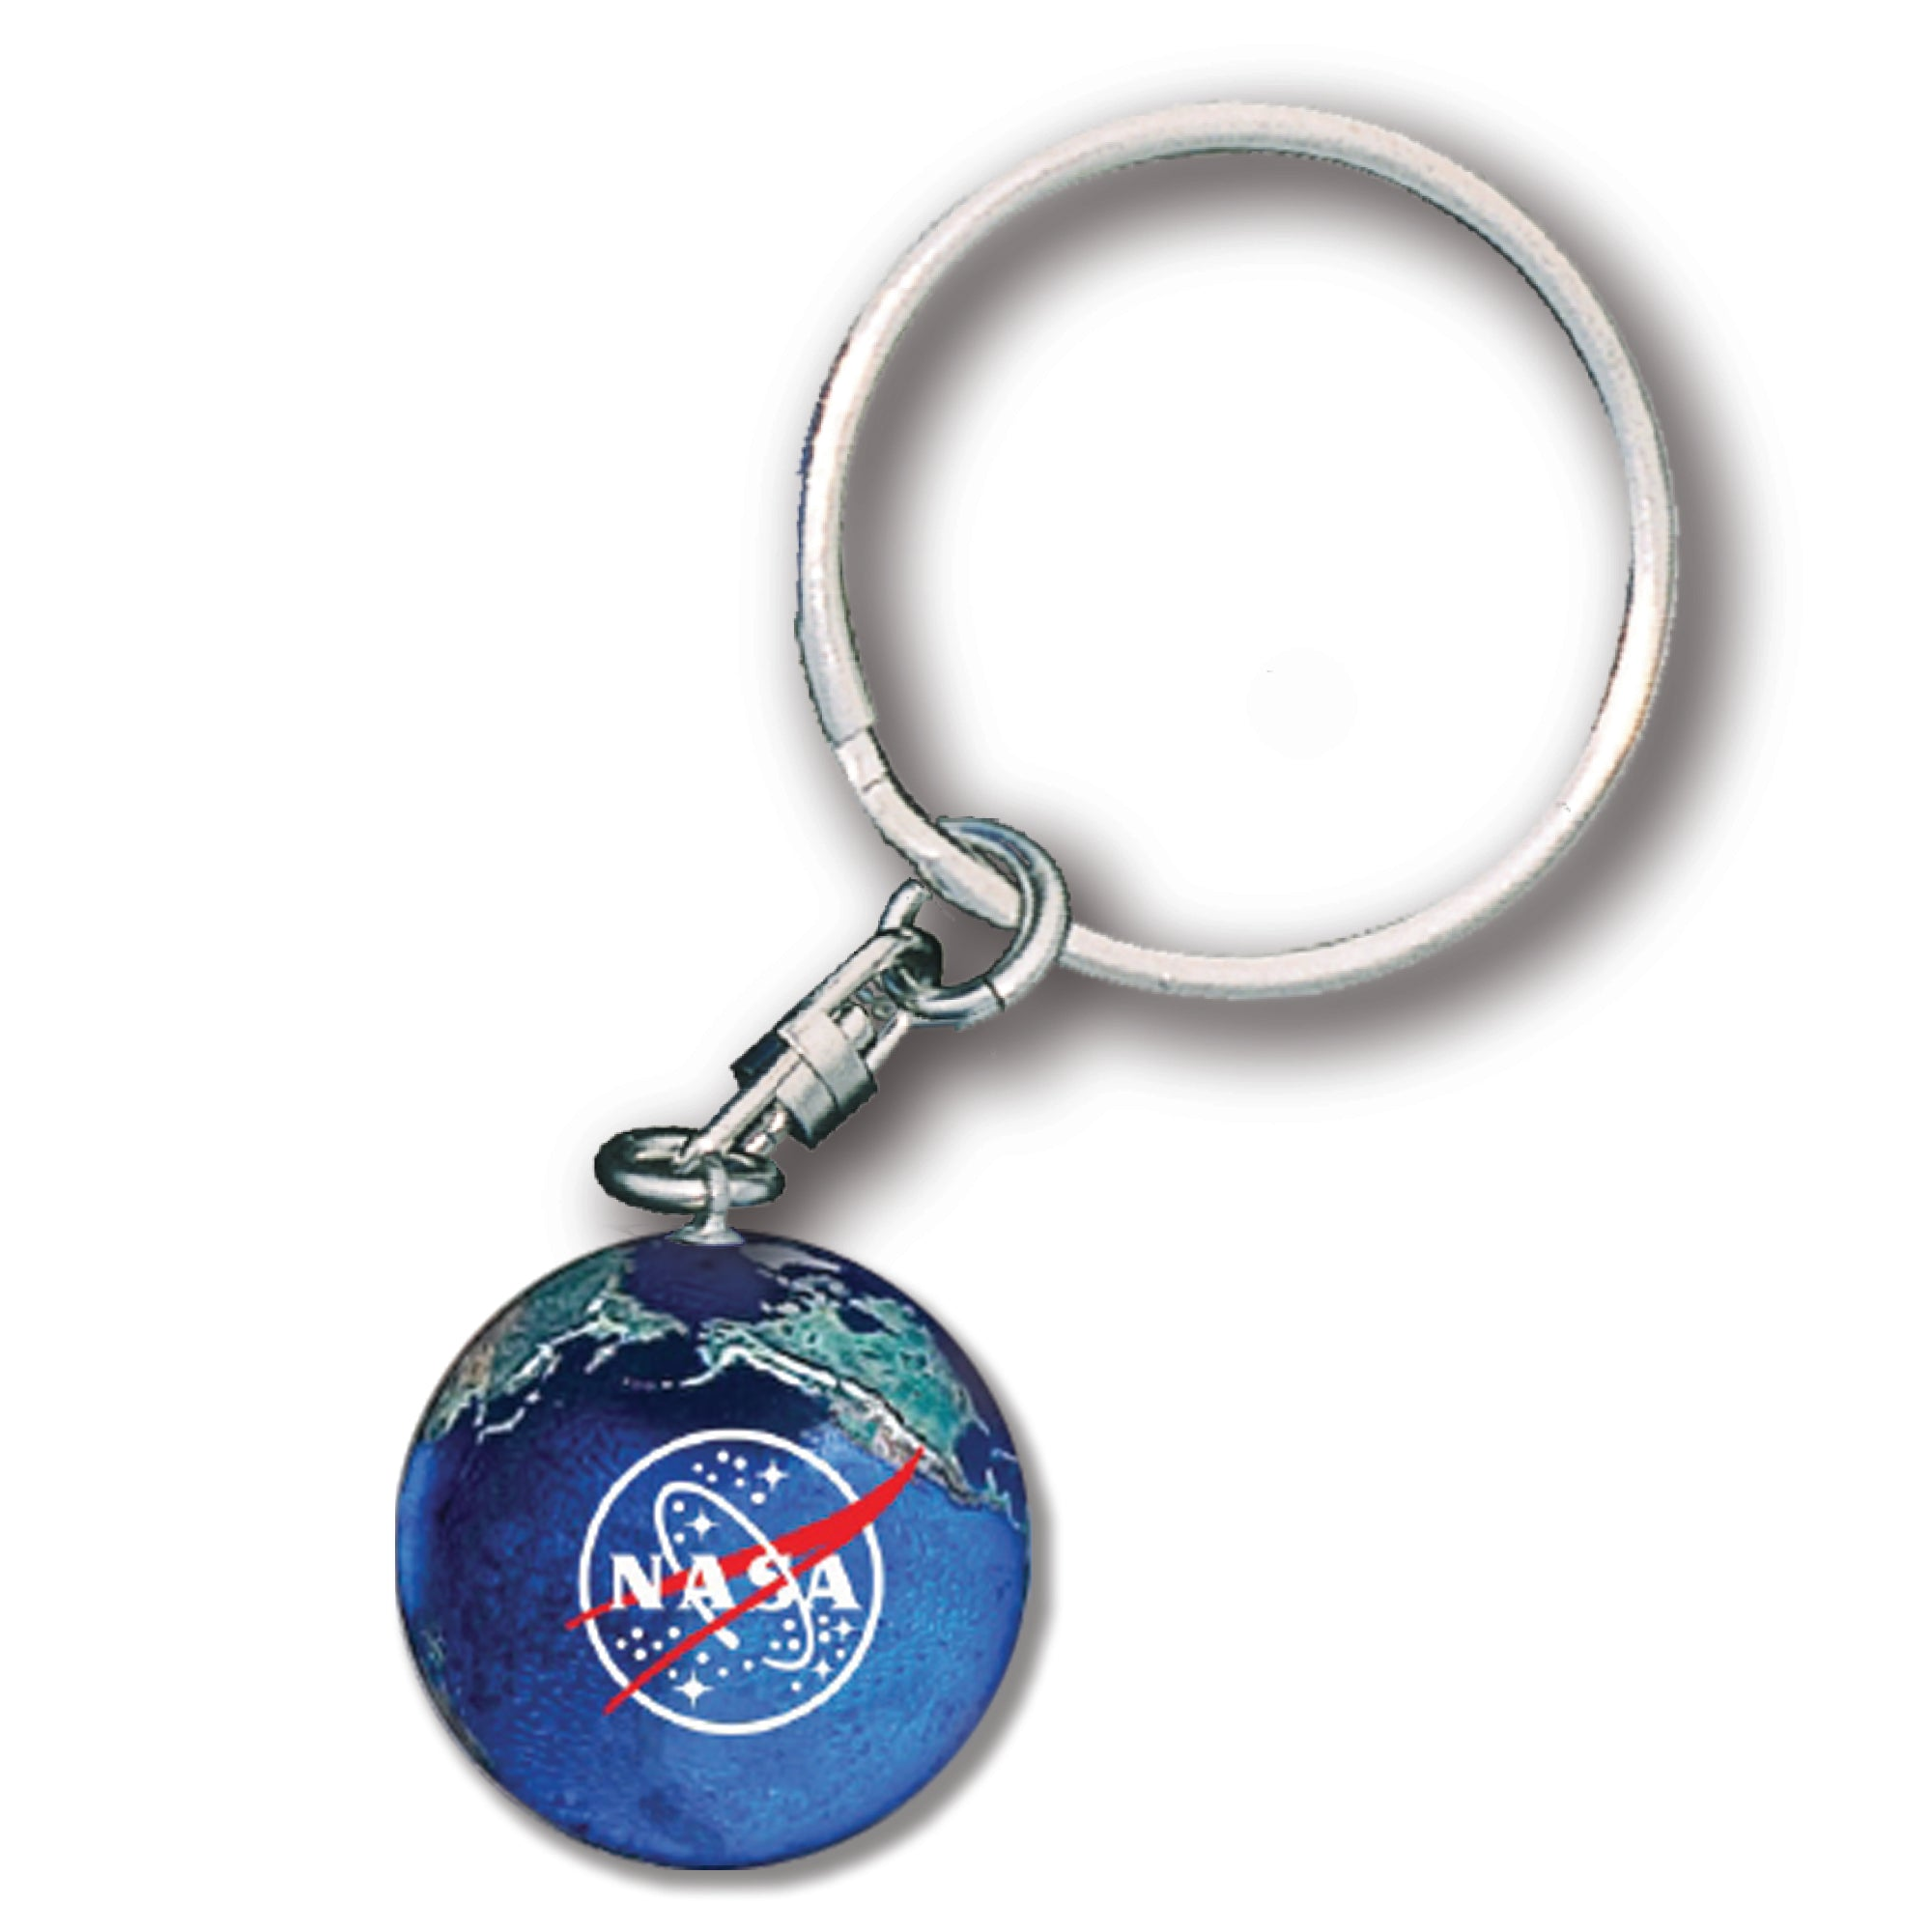 Earth Keychain with NASA Meatball Logo